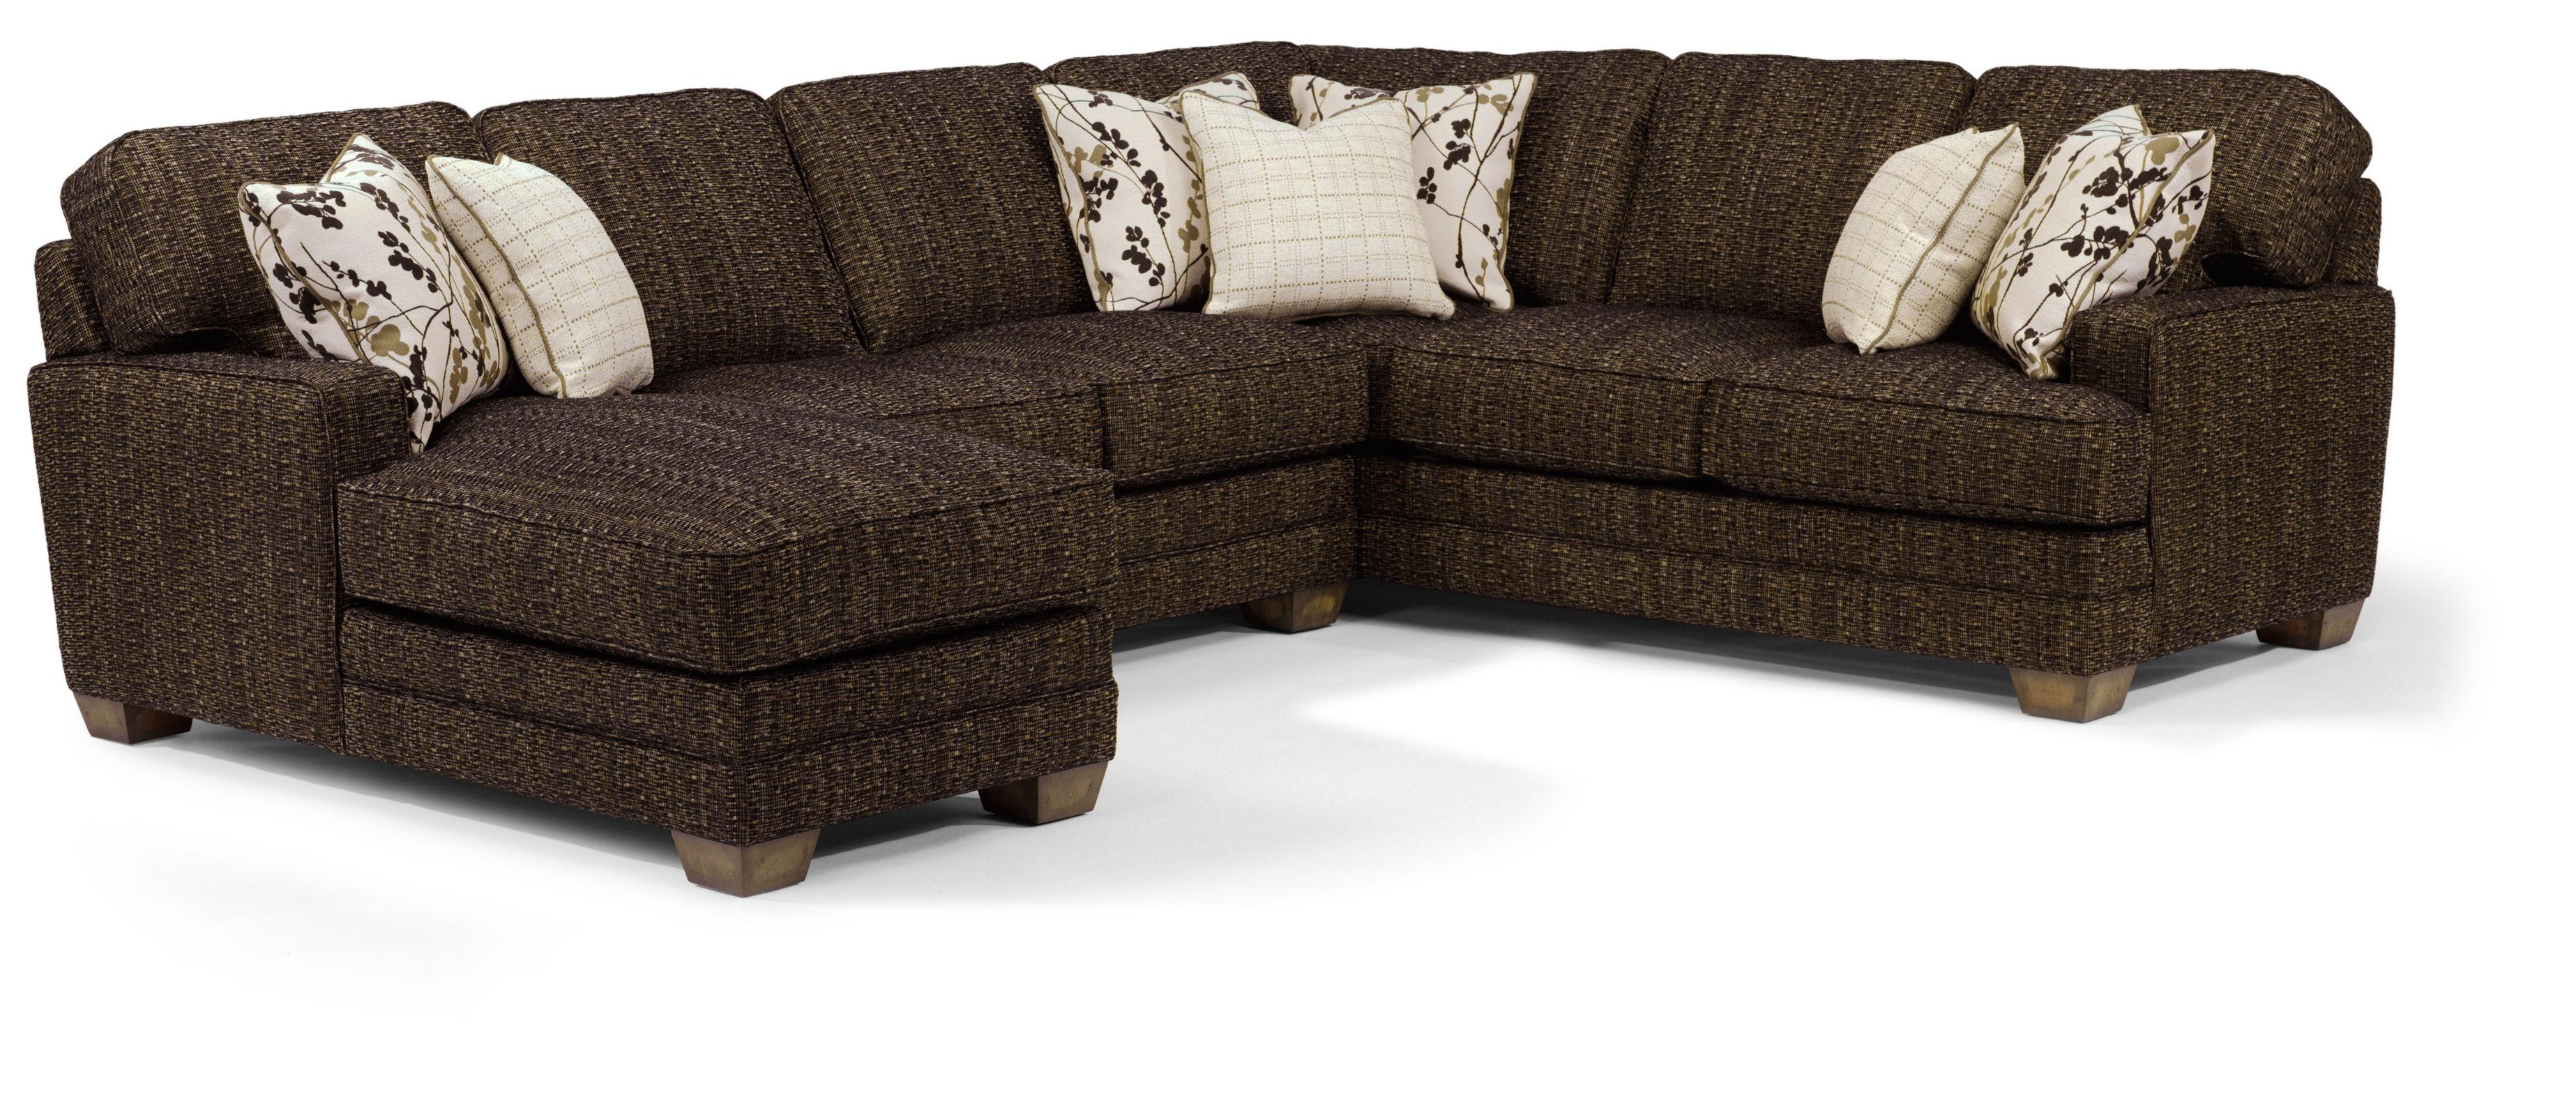 Delano 2 Piece Sectionals With Raf Oversized Chaise For Newest Flexsteel That's My Style <B>Customizable</b> 3 Piece Sectional Sofa (Gallery 12 of 20)